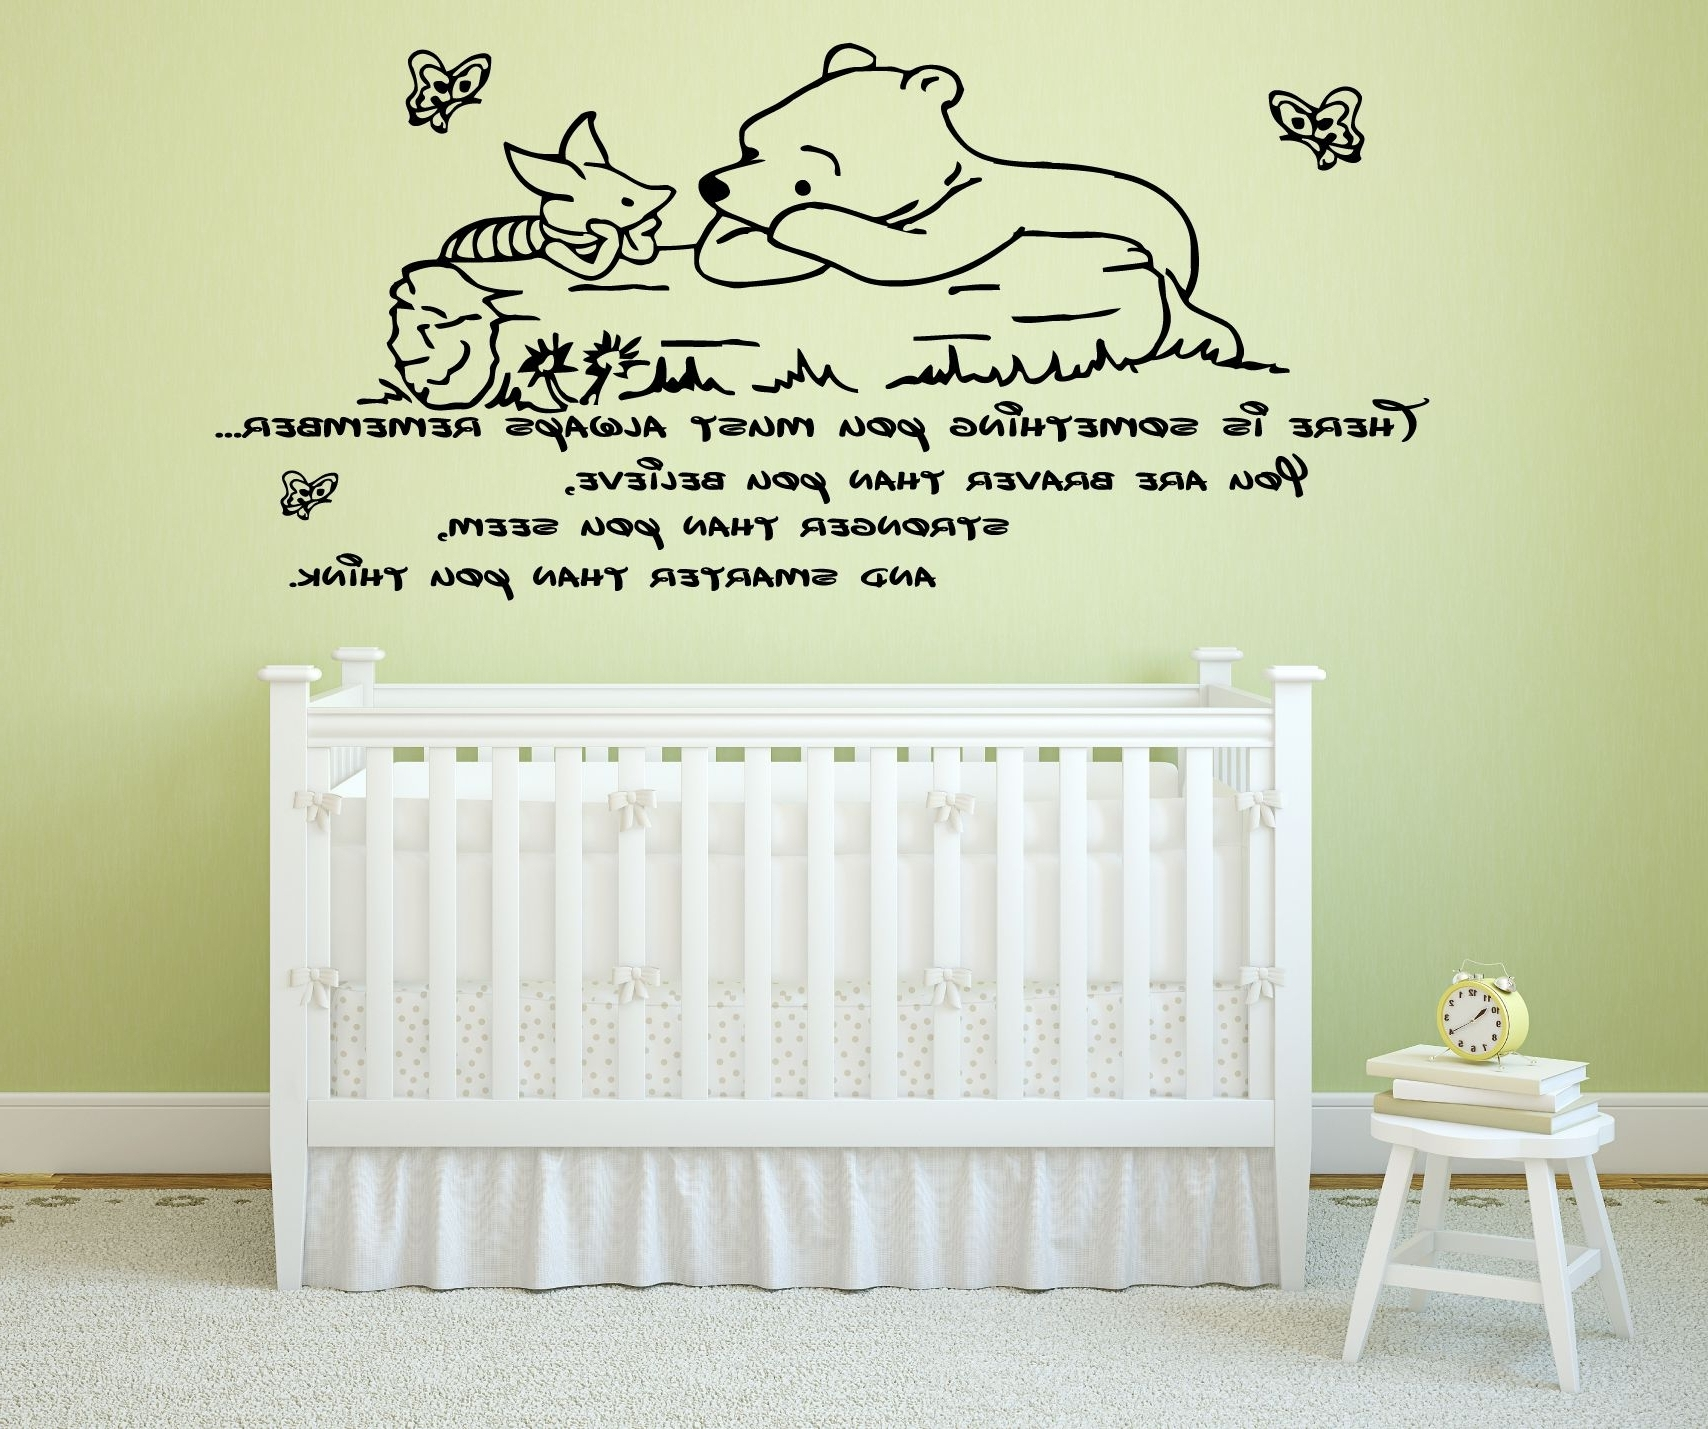 Winnie The Pooh Wall Decor For Nursery • Walls Decor Intended For Popular Winnie The Pooh Wall Decor (View 14 of 15)